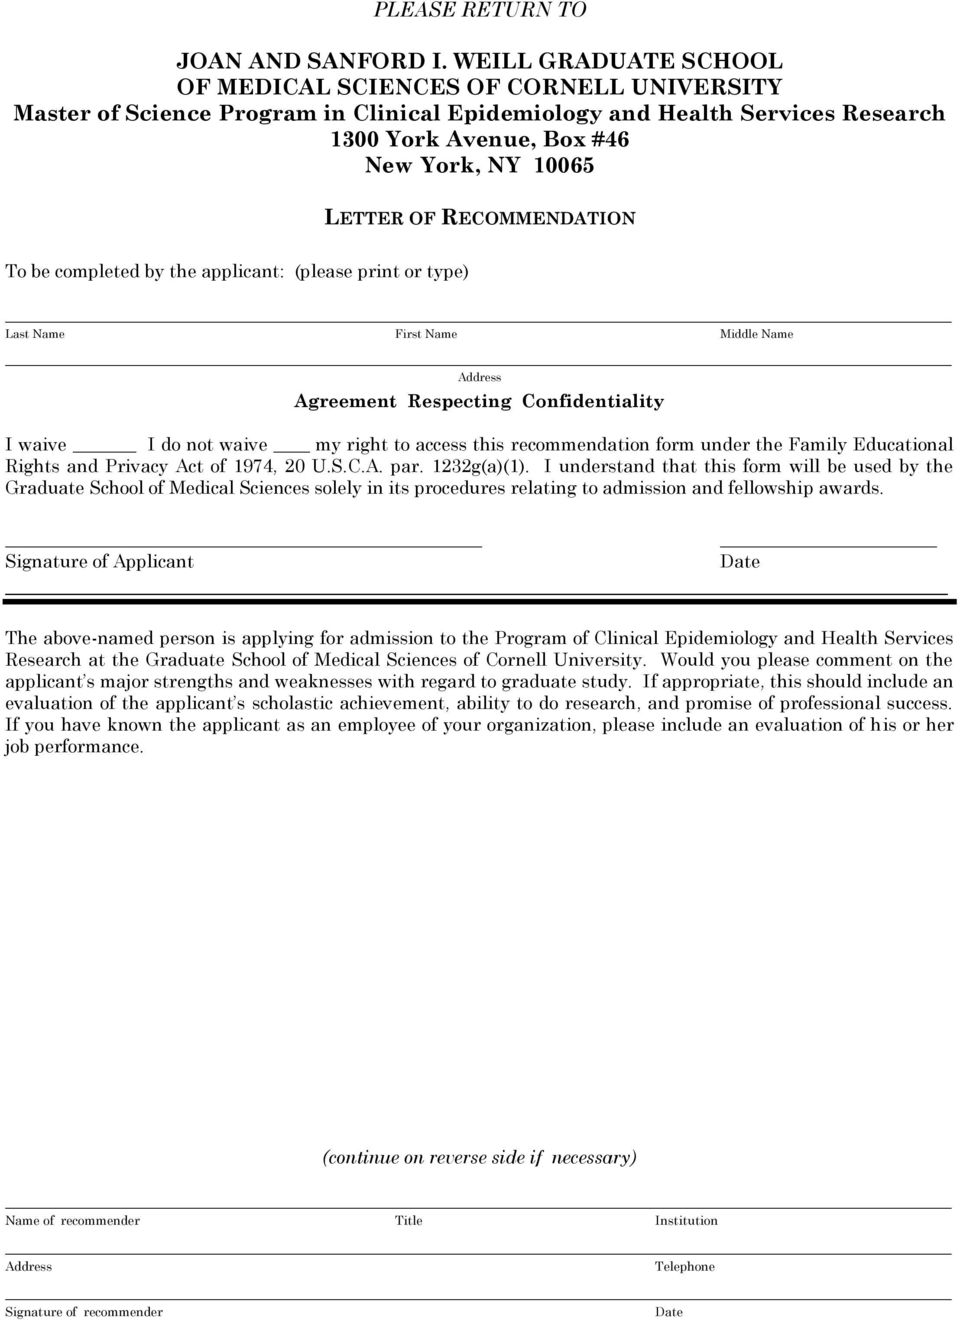 Agreement Respecting Confidentiality I waive I do not waive my right to access this recommendation form under the Family Educational Rights and Privacy Act of 1974, 20 U.S.C.A. par. 1232g(a)(1).